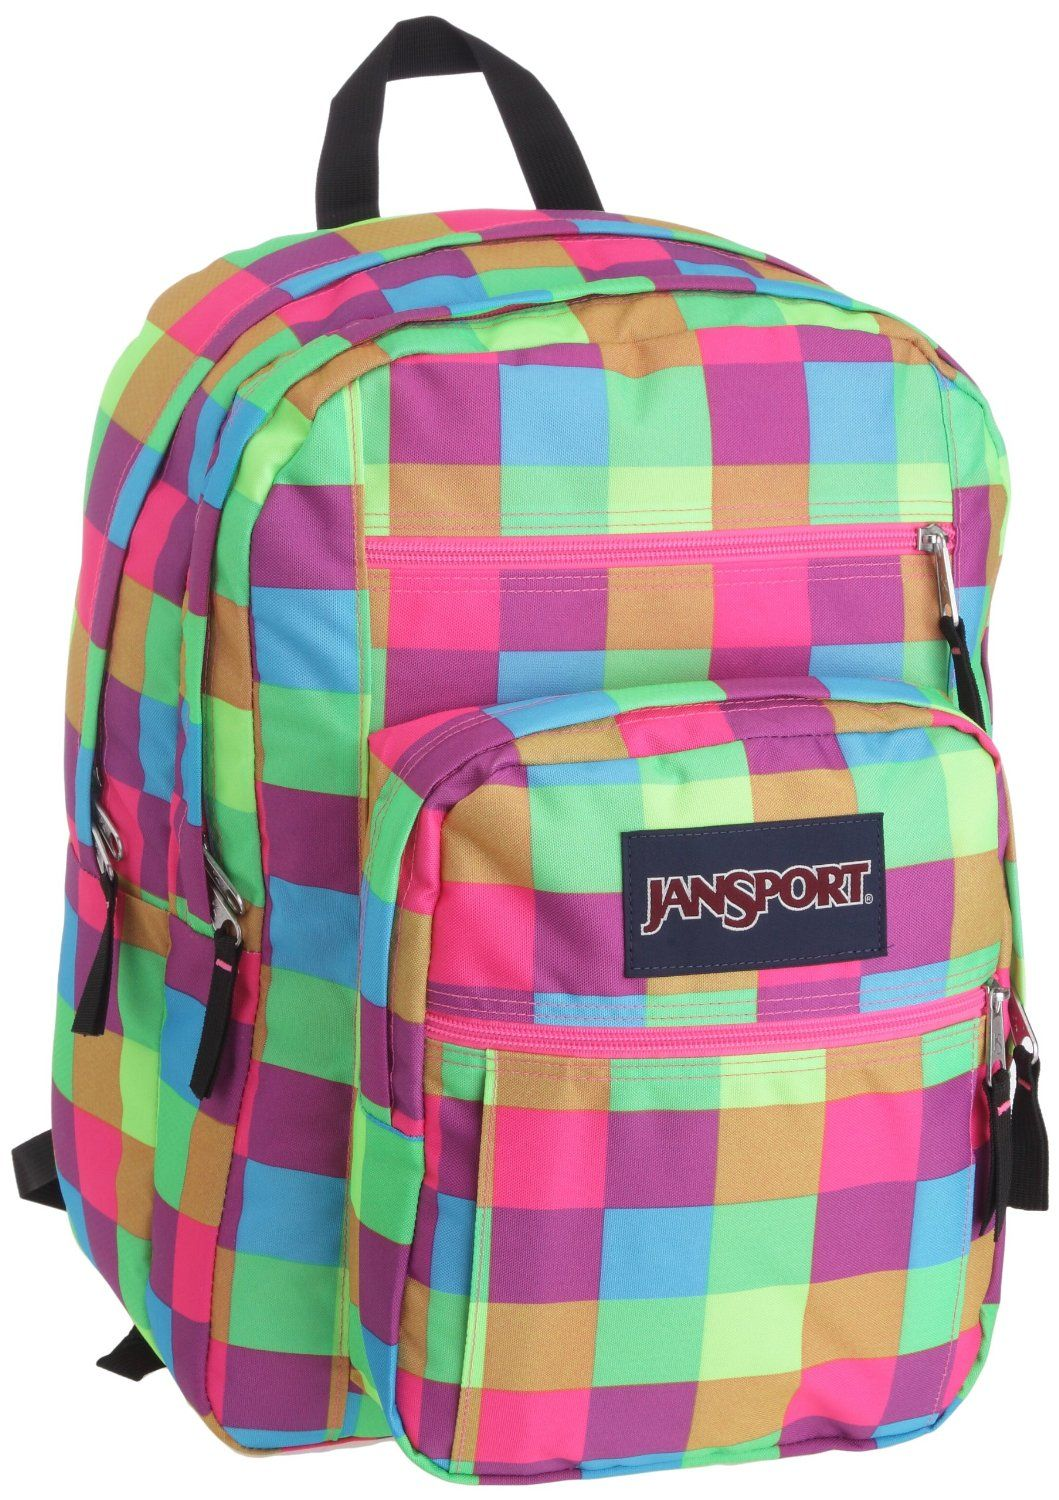 8b9063822e28 plaid Jansport backpack for girls